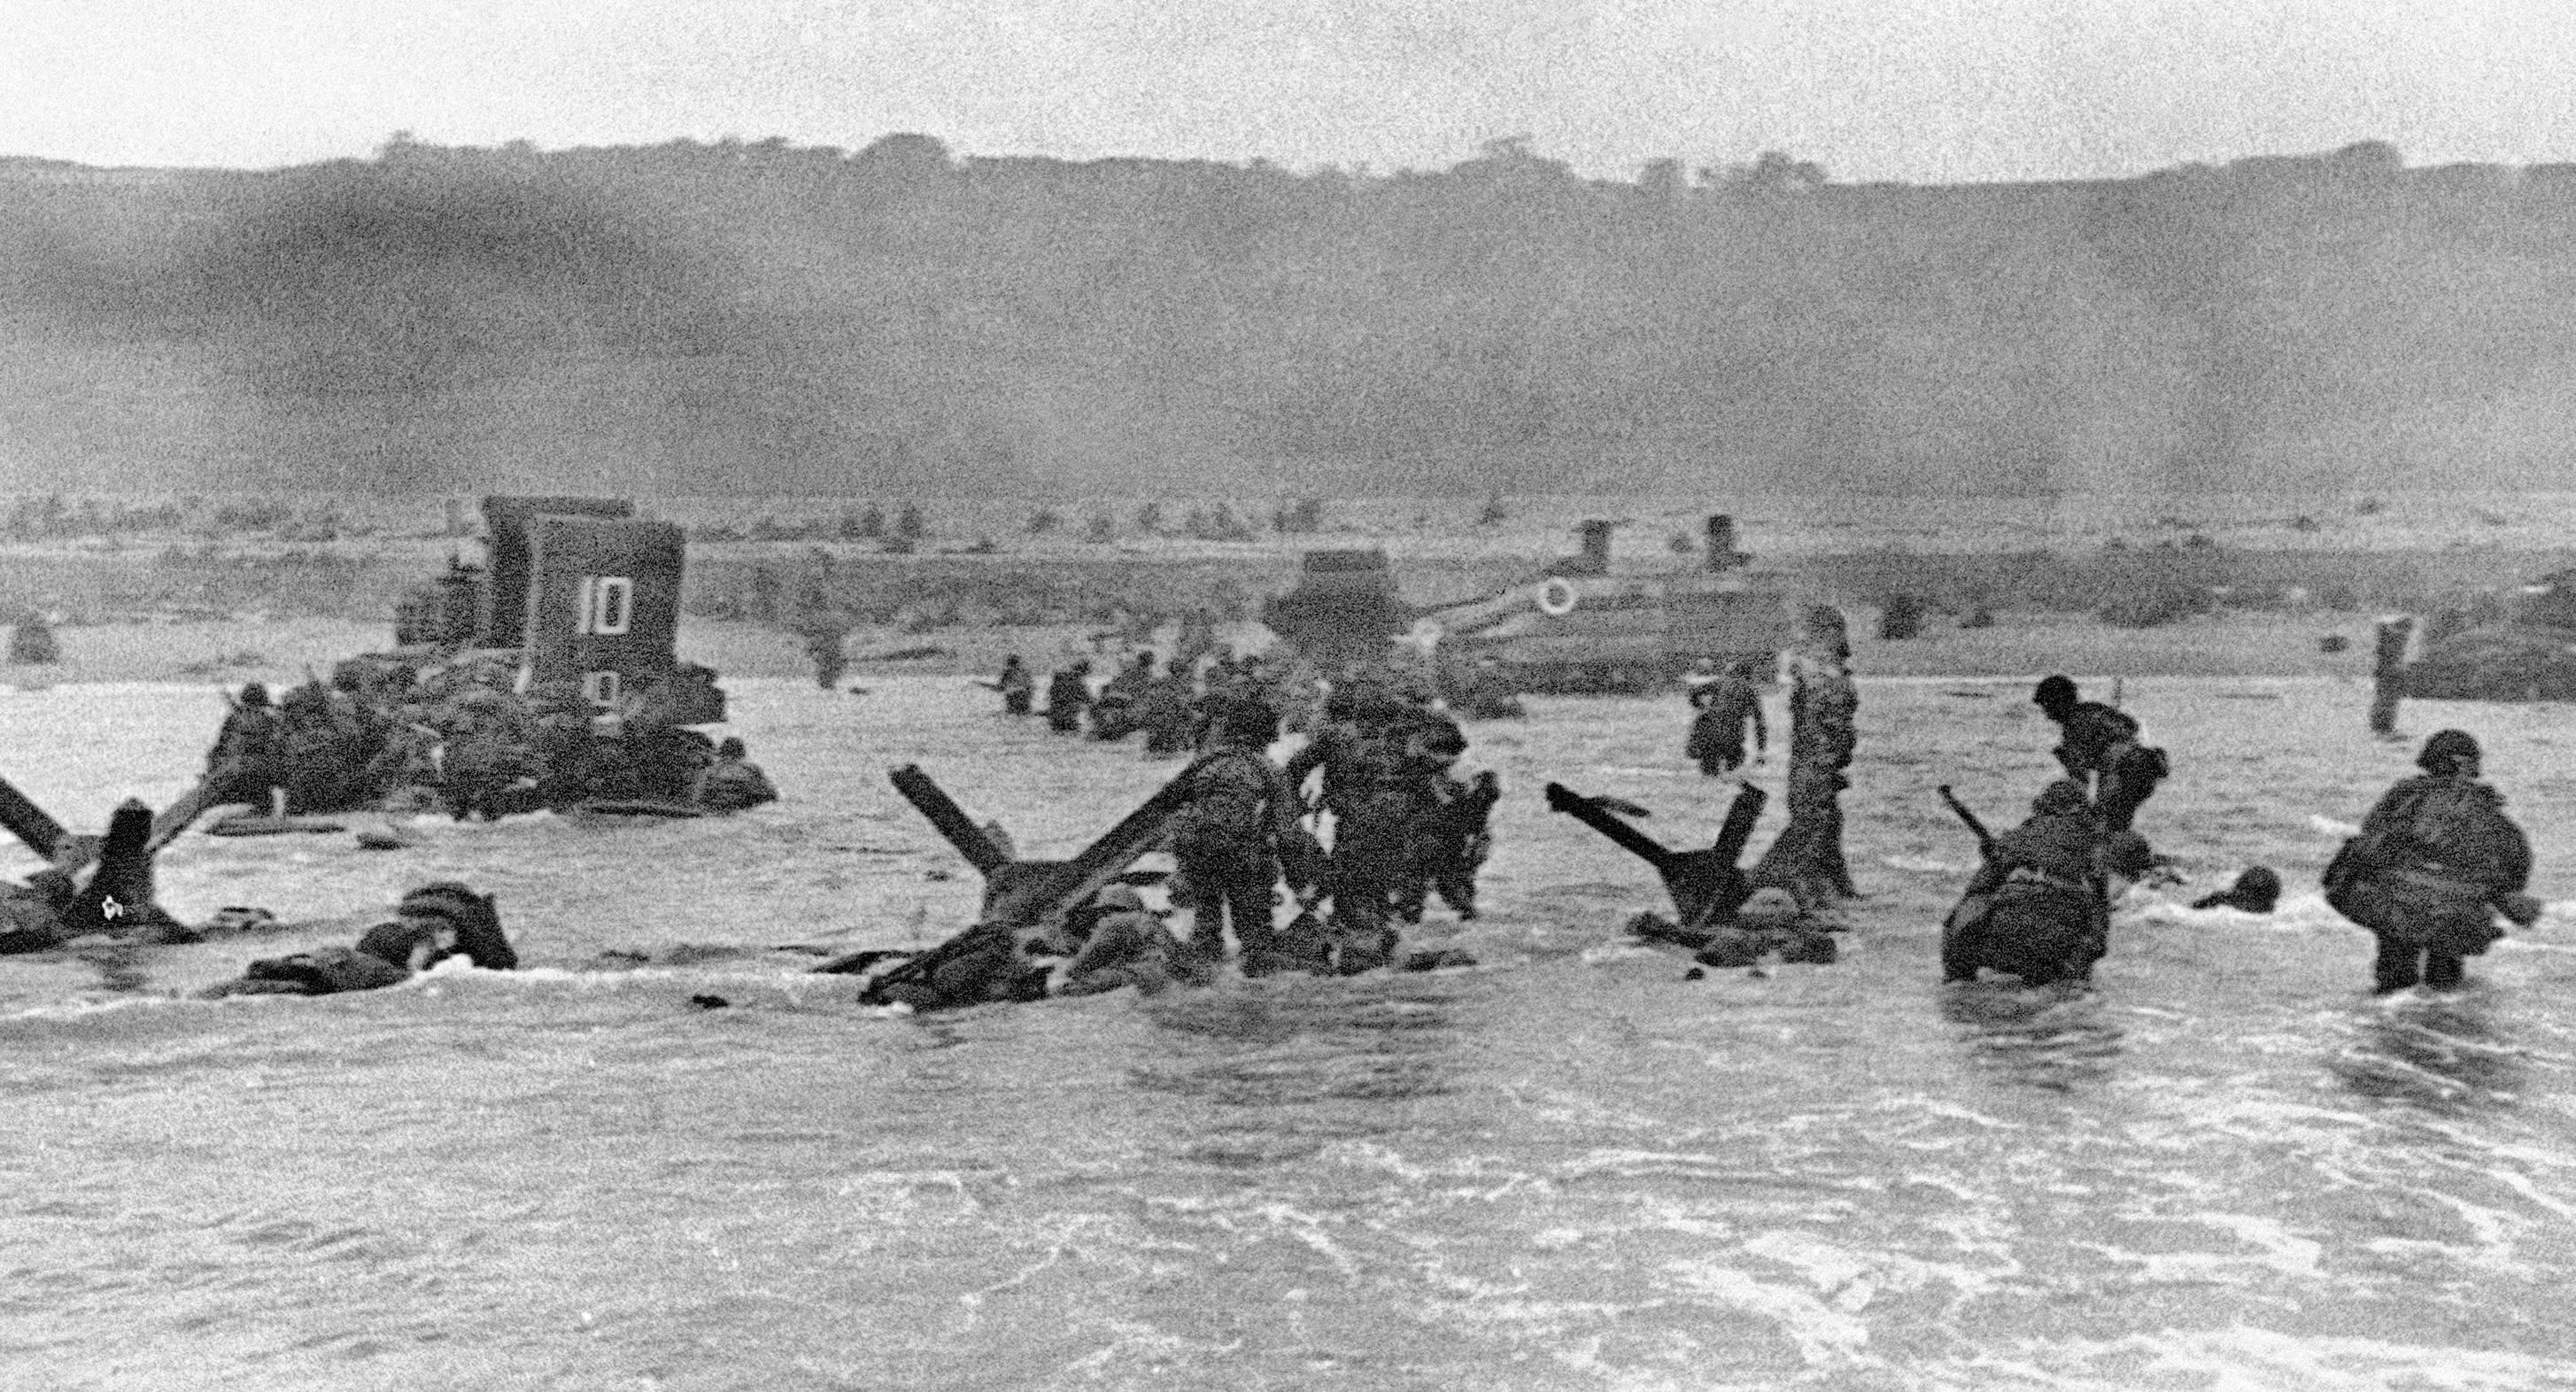 Editorial: Cherish the stories of D-Day veterans